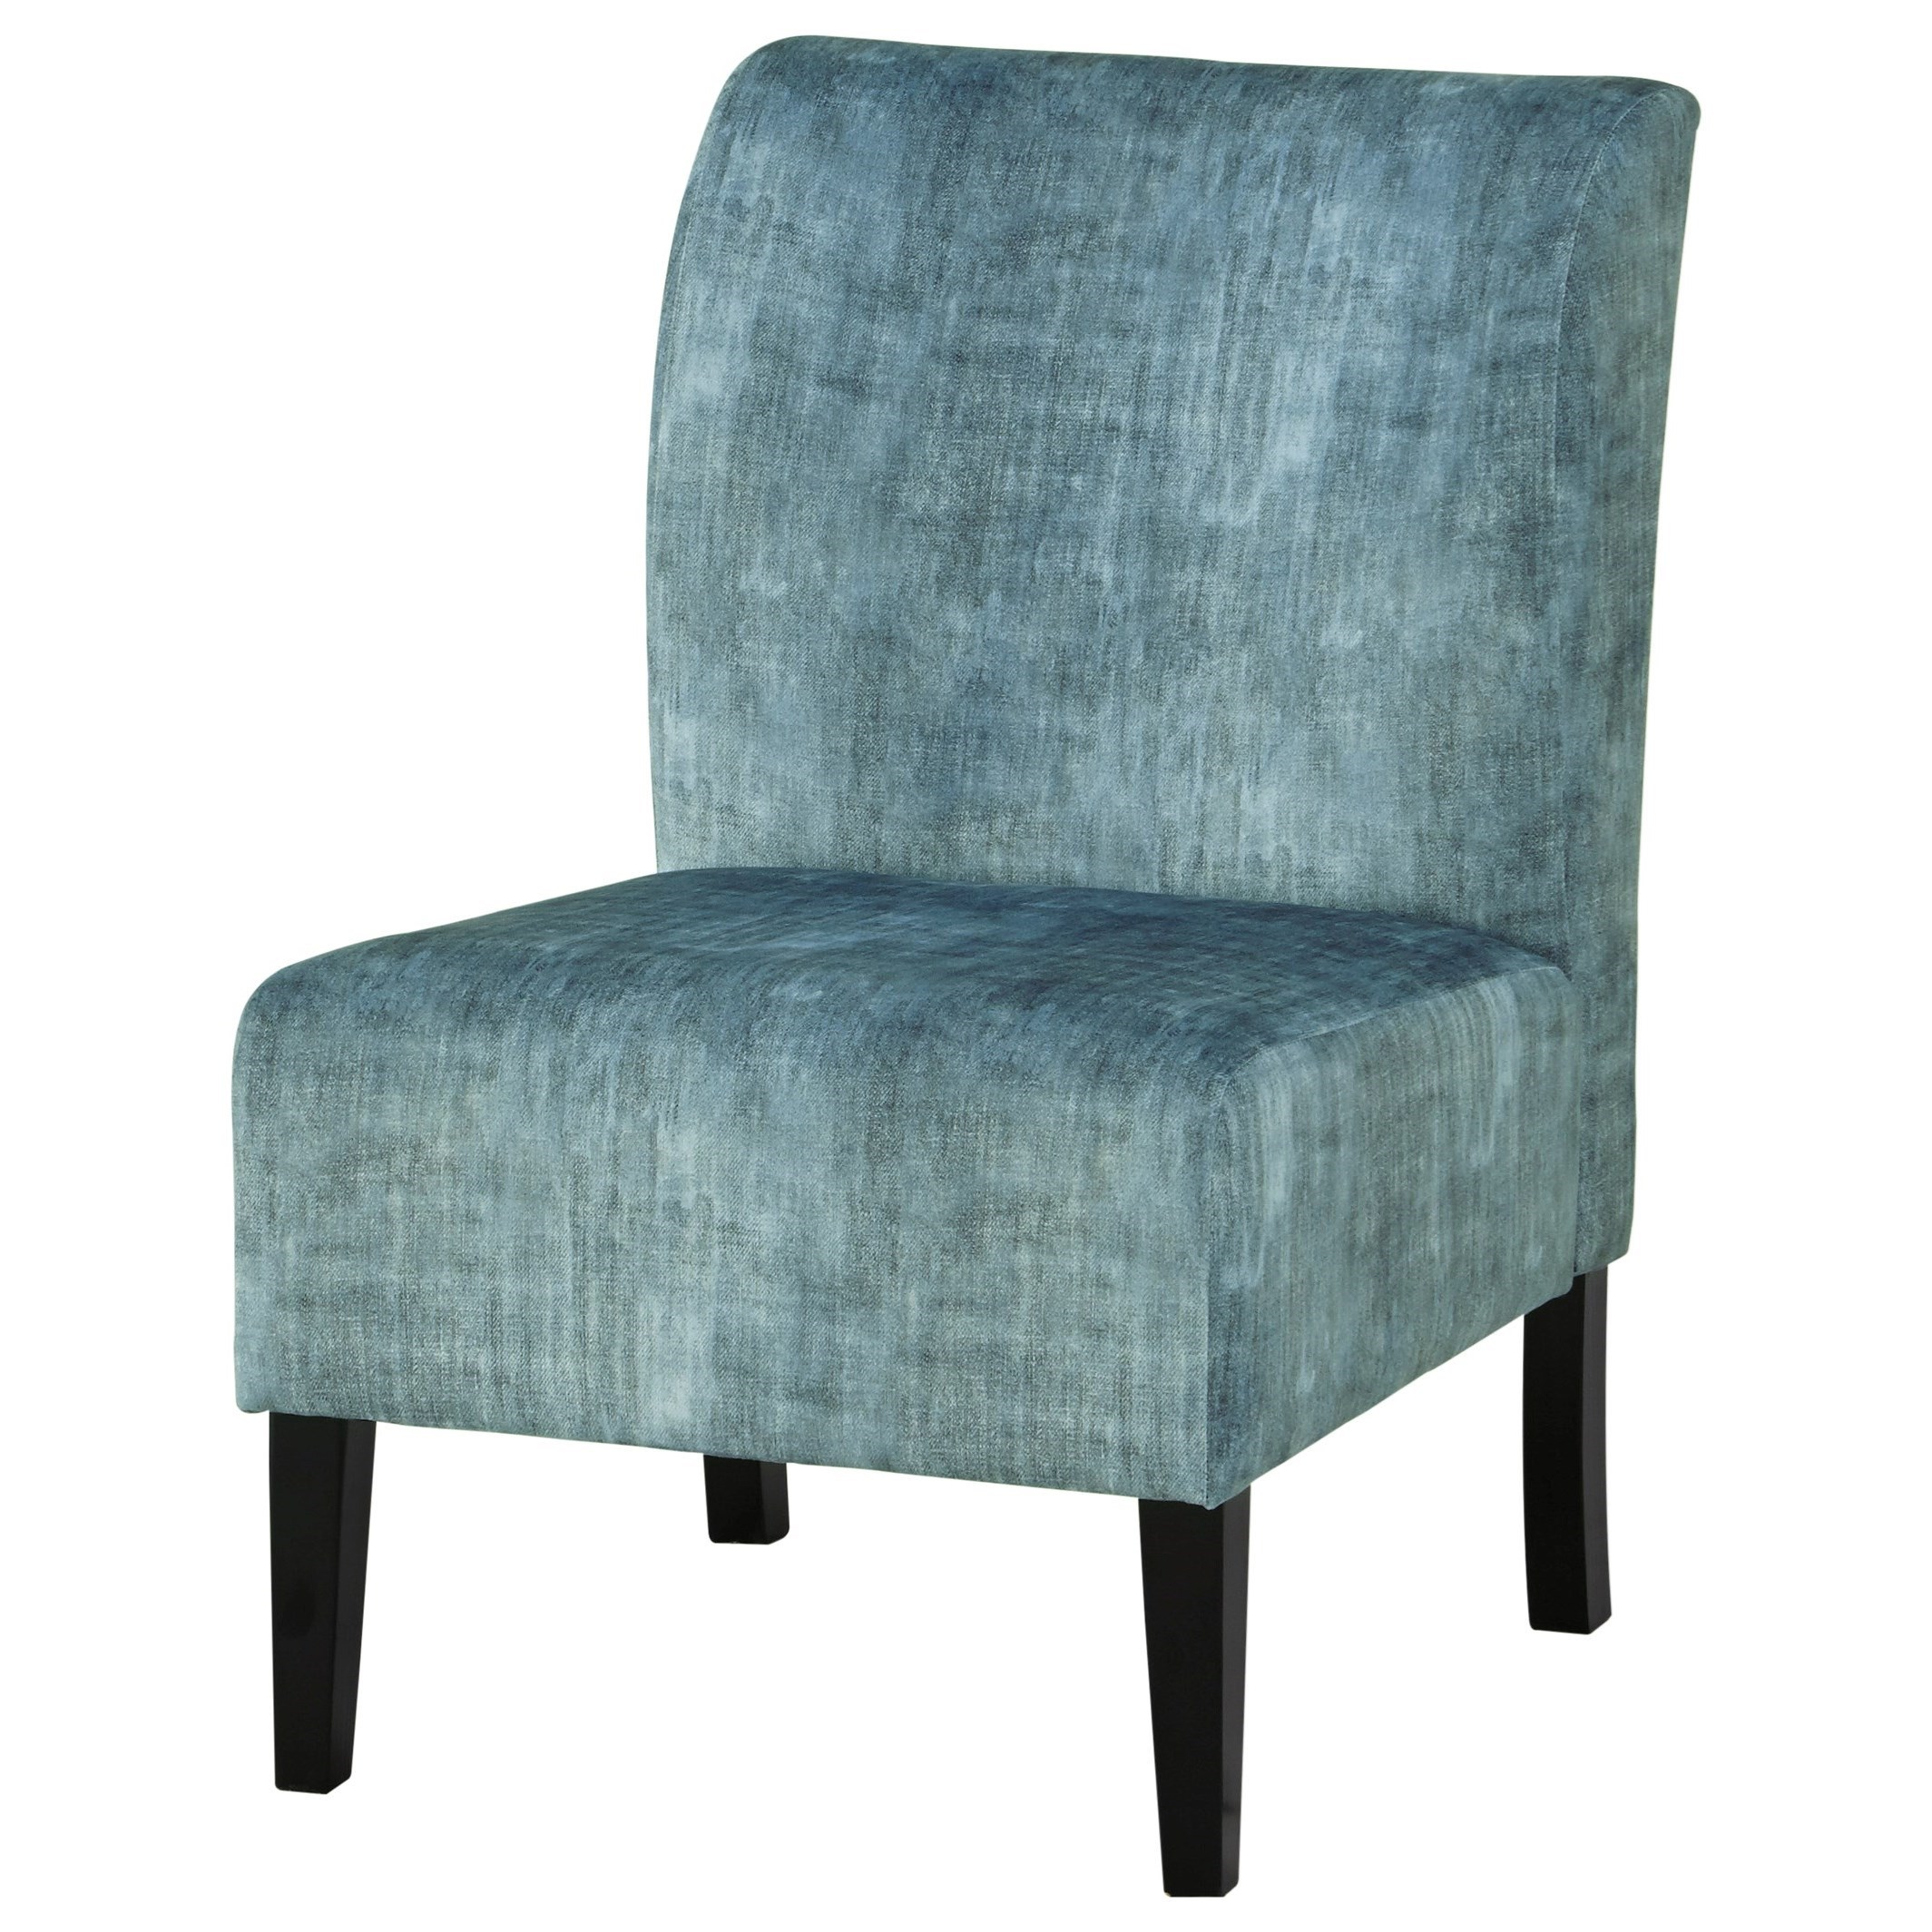 Triptis Accent Chair by Vendor 3 at Becker Furniture